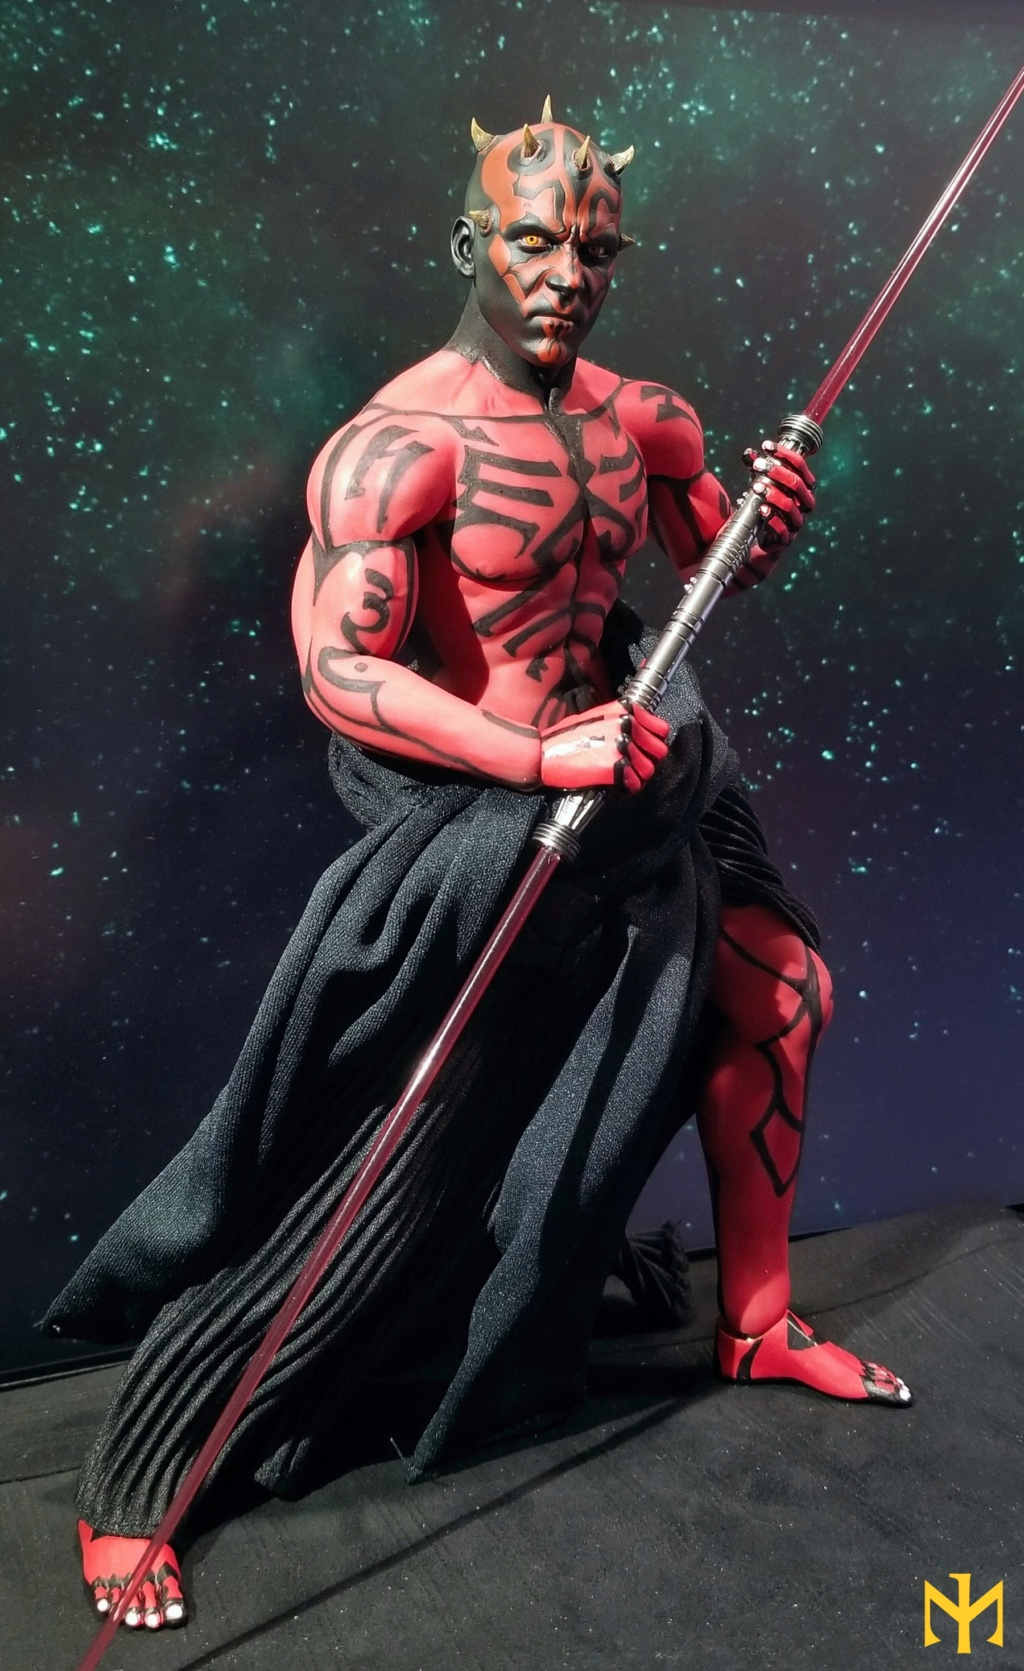 STAR WARS Updated Darth Maul Custom Part IV Maul 2.0 (photo heavy) Swdmt015